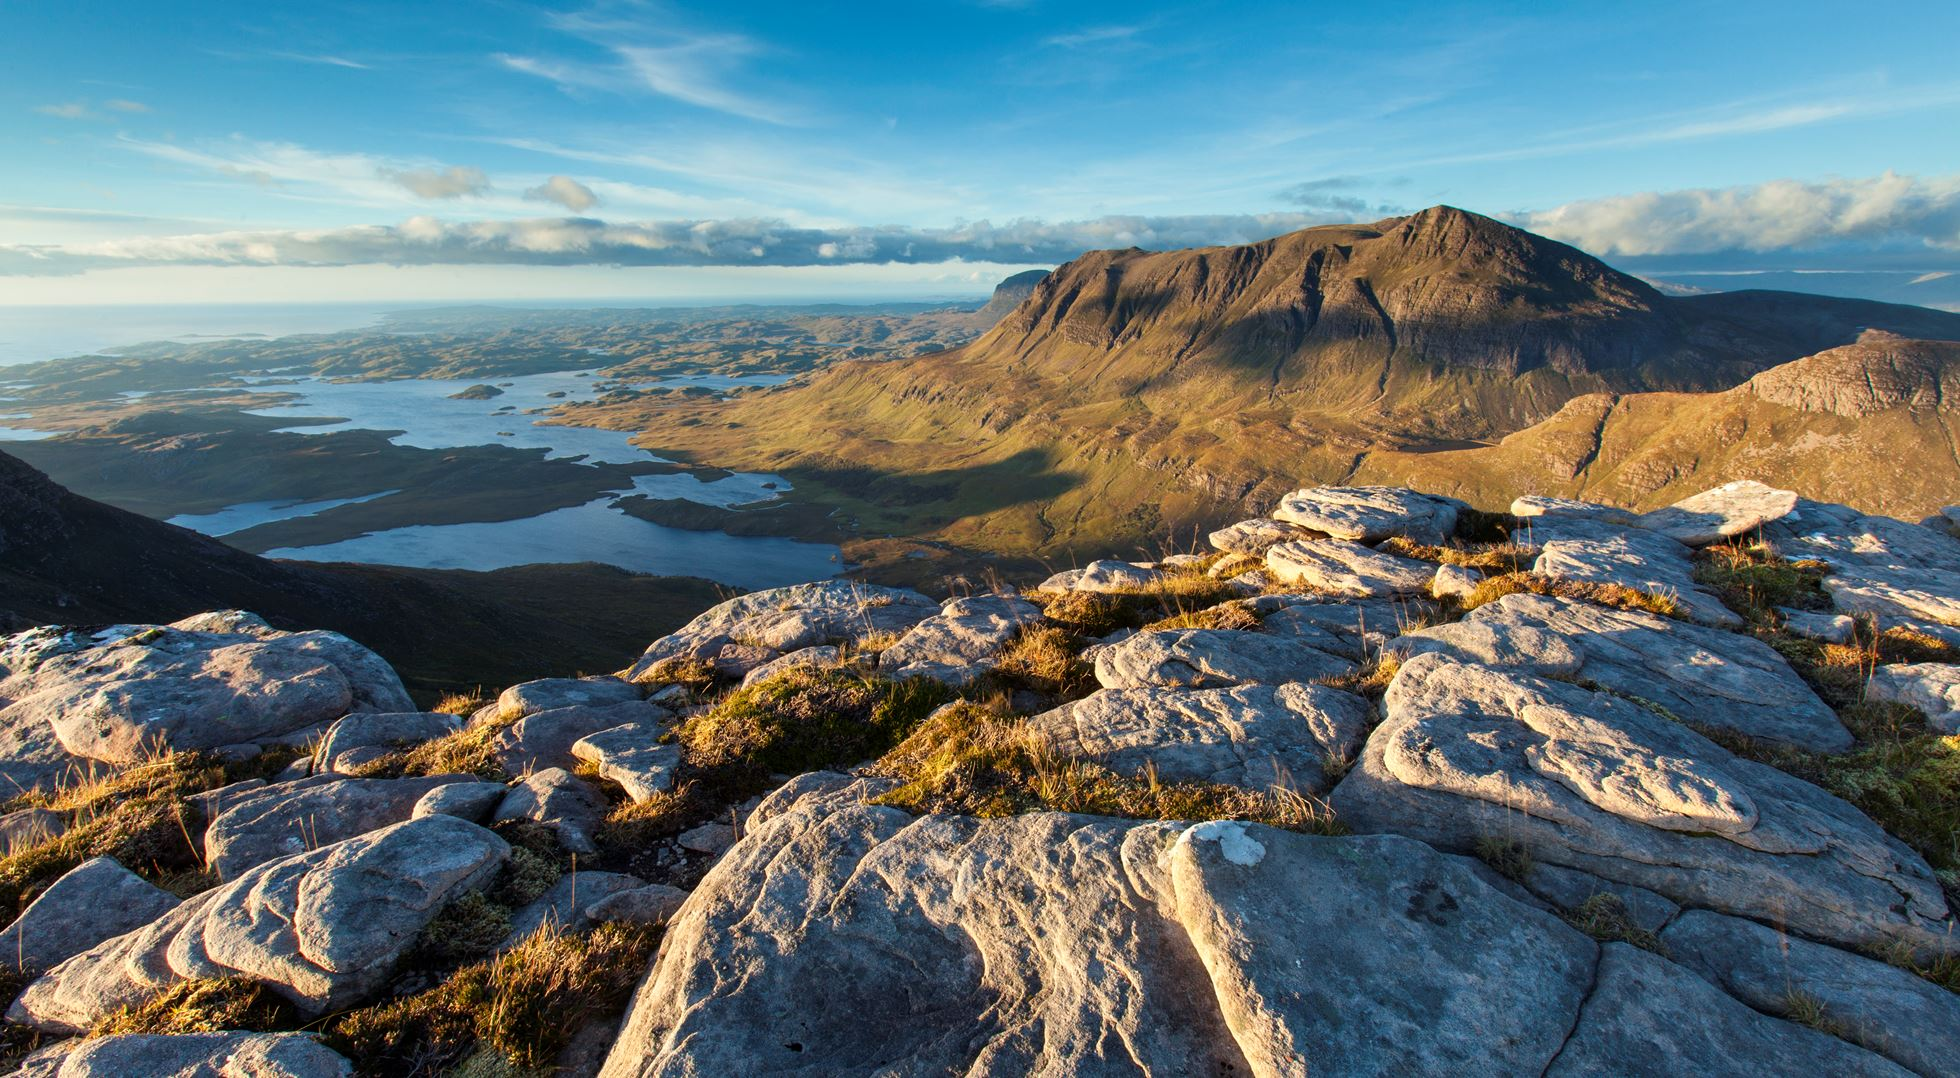 View from Cul Beag to Cul Mor, Assynt, Scotland